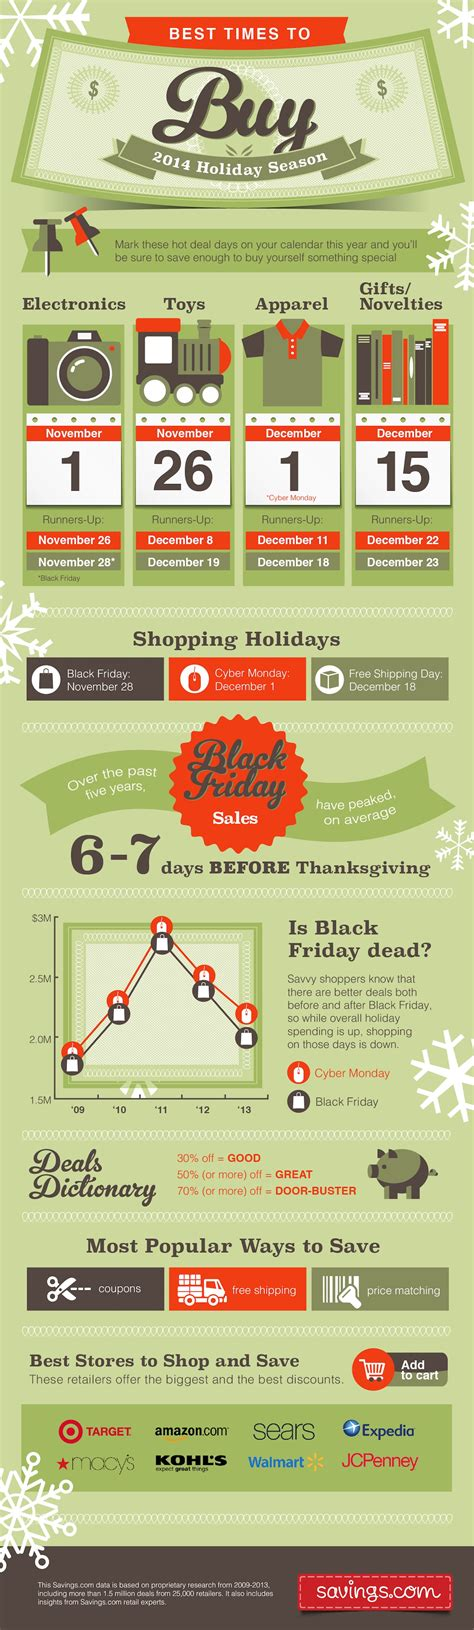 is it a good time to buy a house best time to buy during the holidays